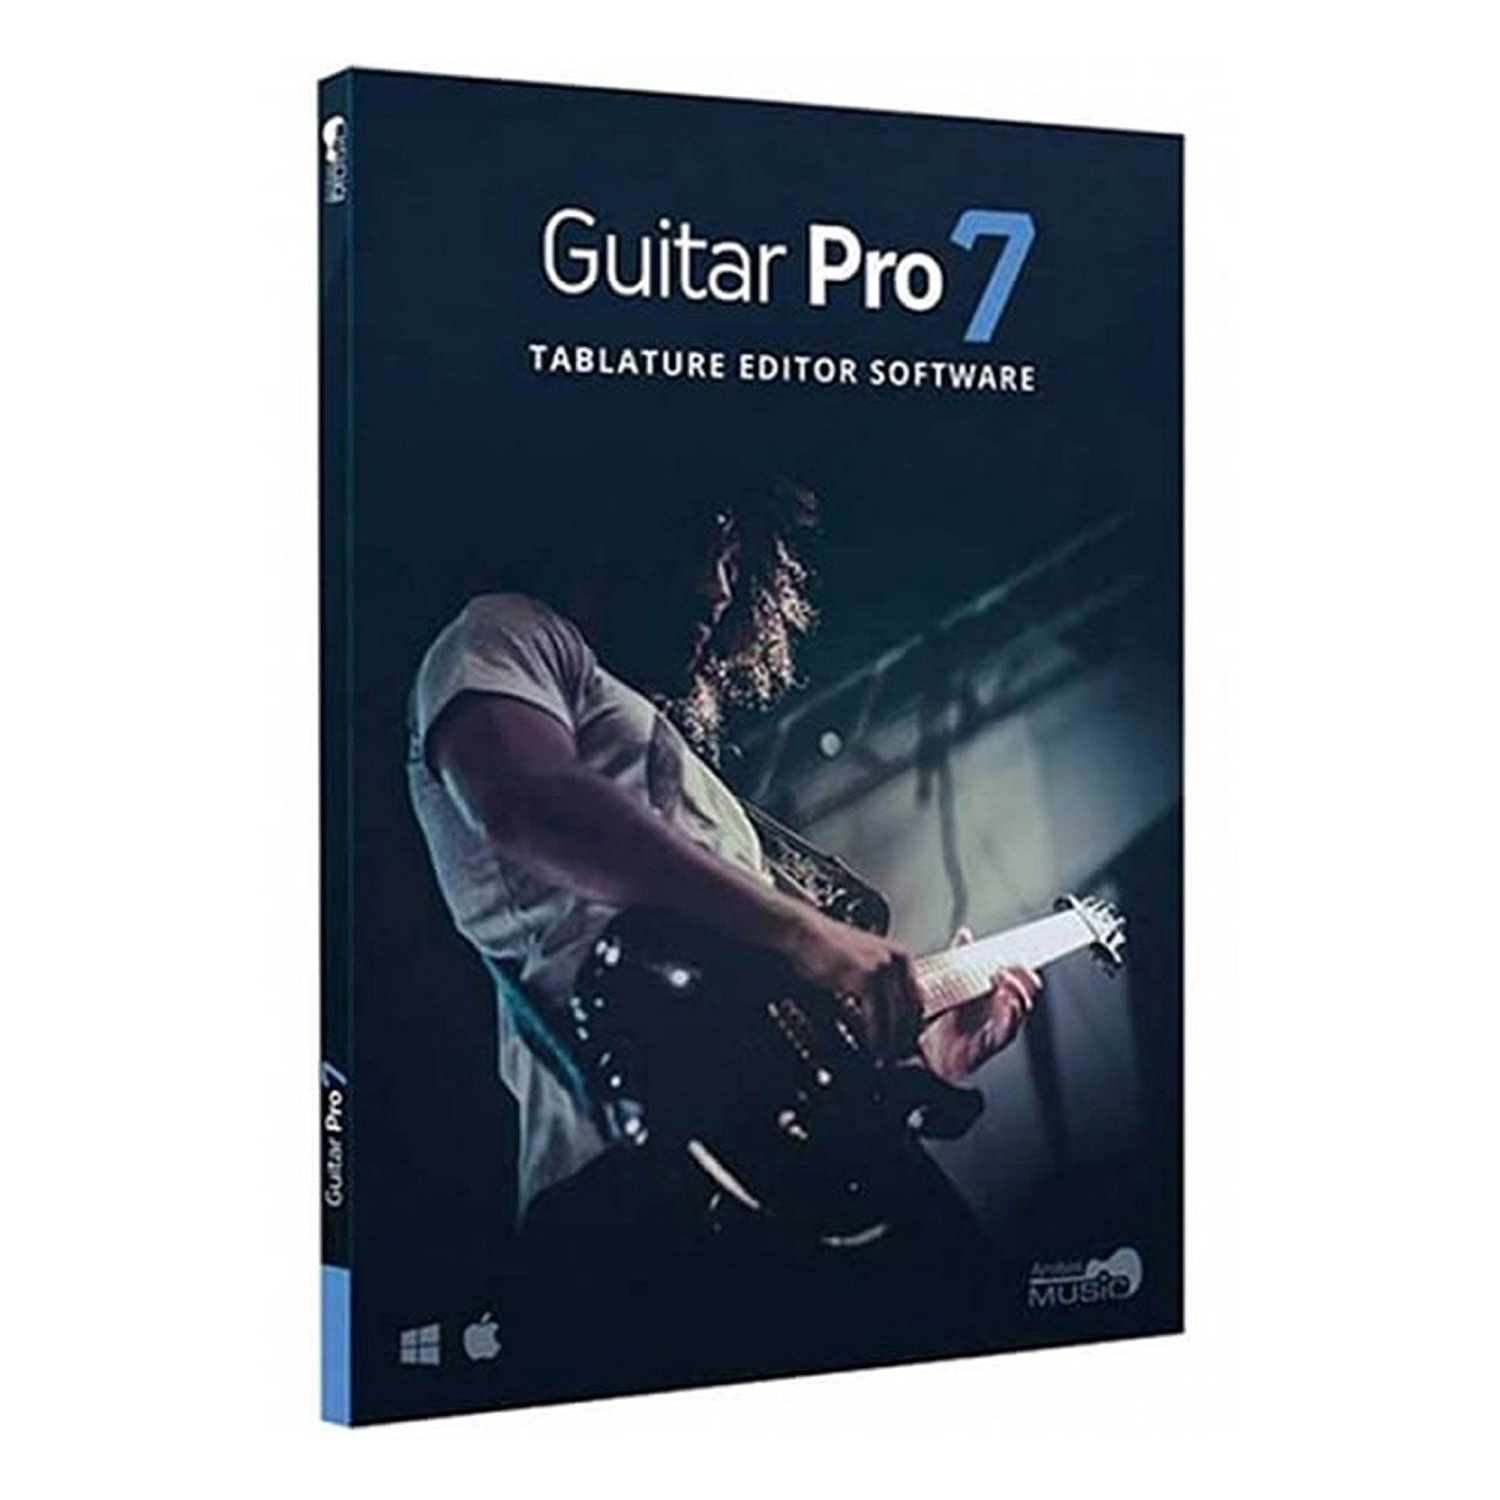 Guitar Pro: a tablature editor, a score player, and a backing band all in one